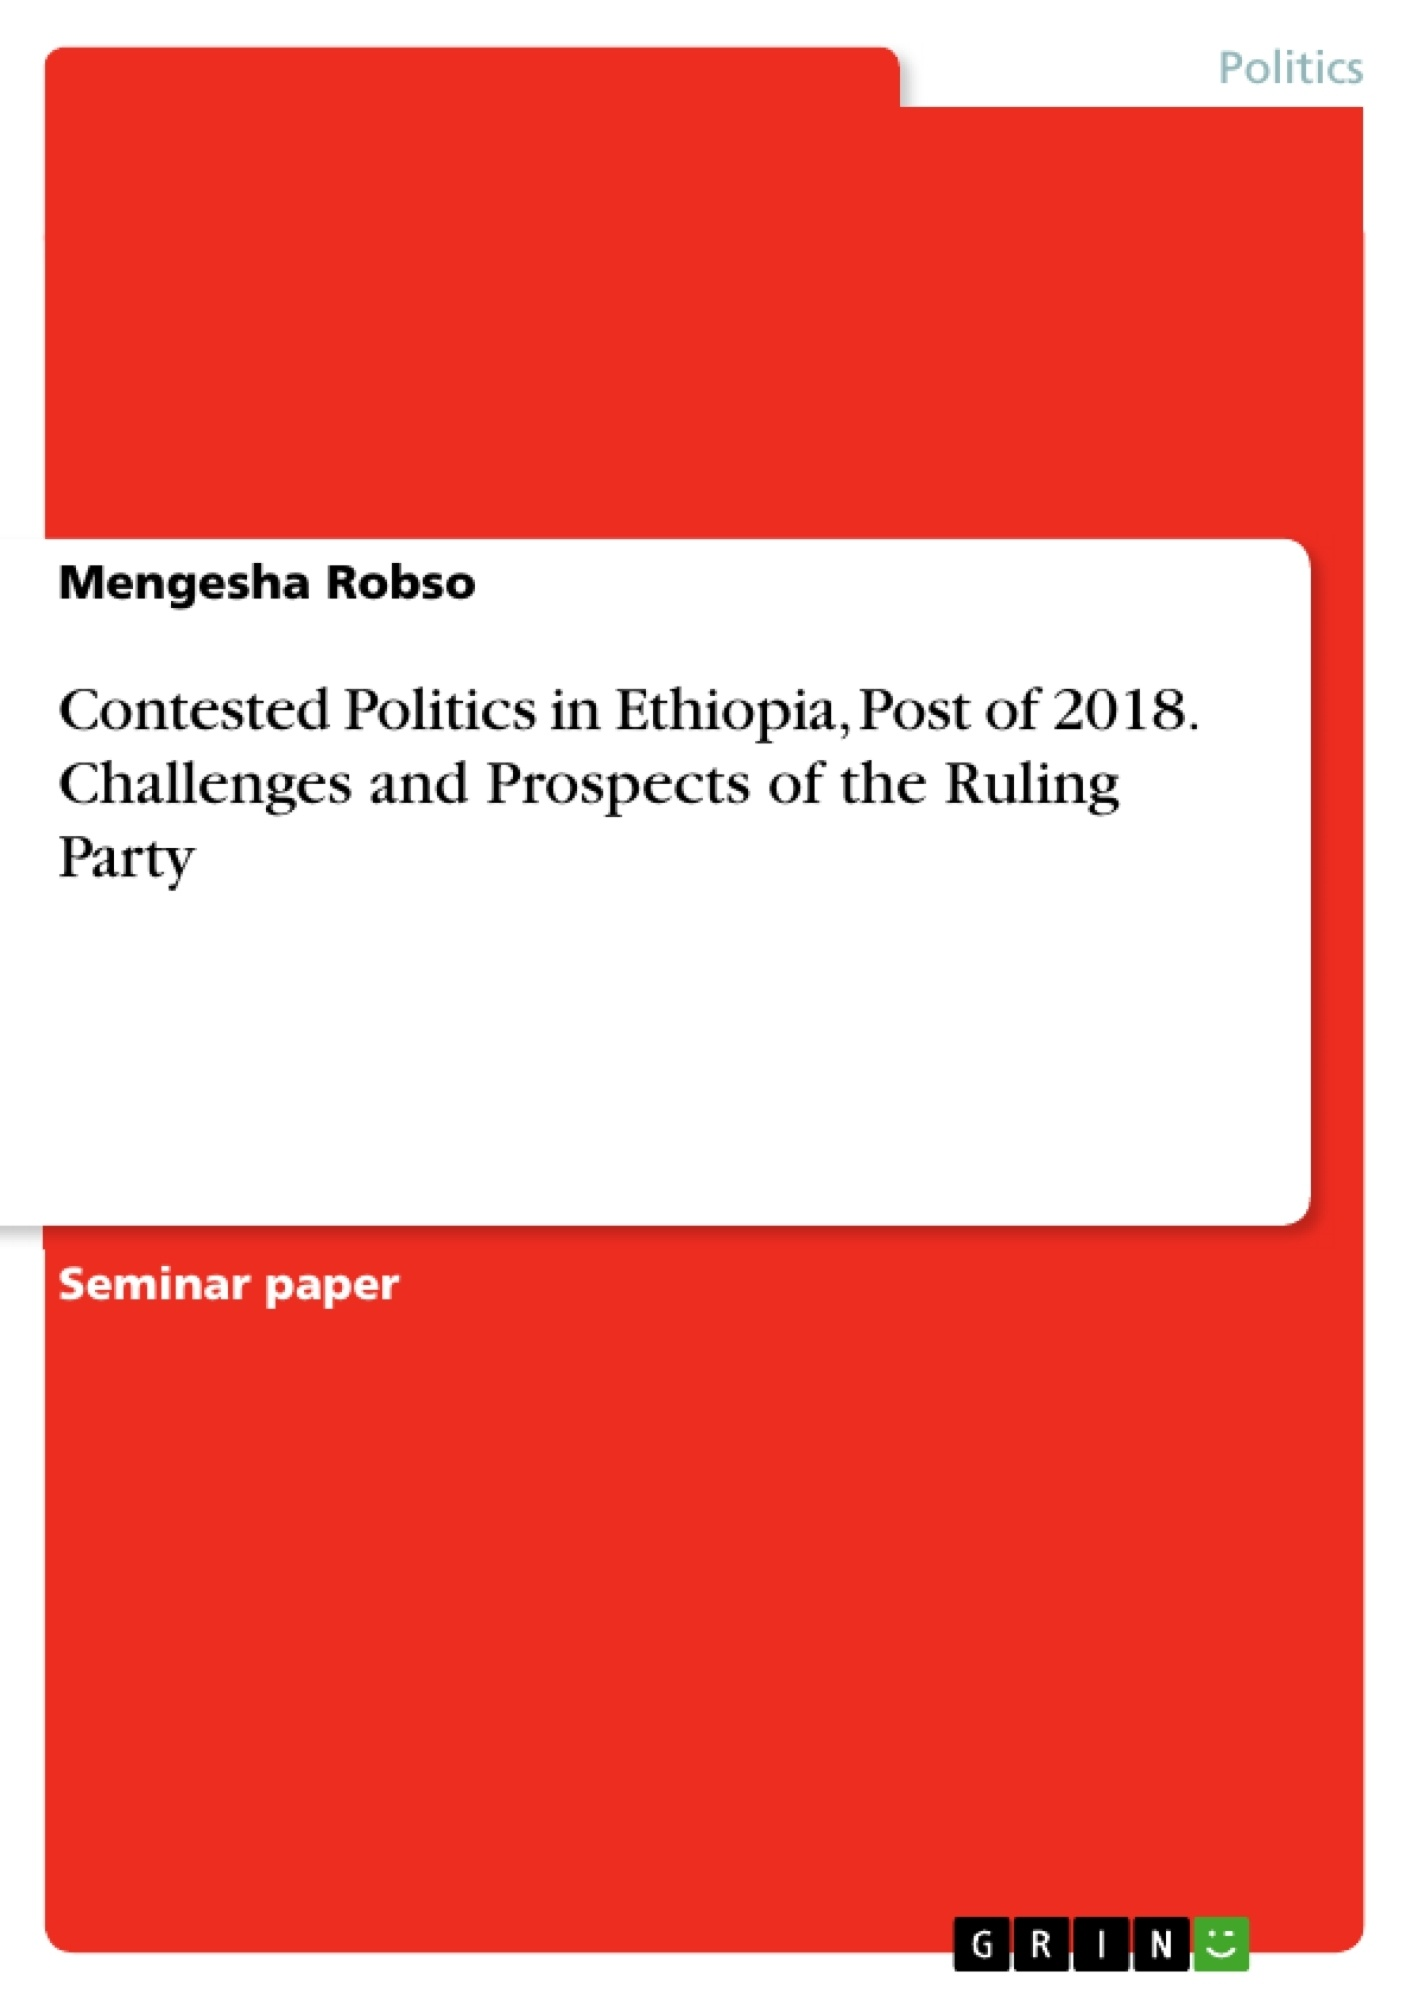 Title: Contested Politics in Ethiopia, Post of 2018. Challenges and Prospects of the Ruling Party